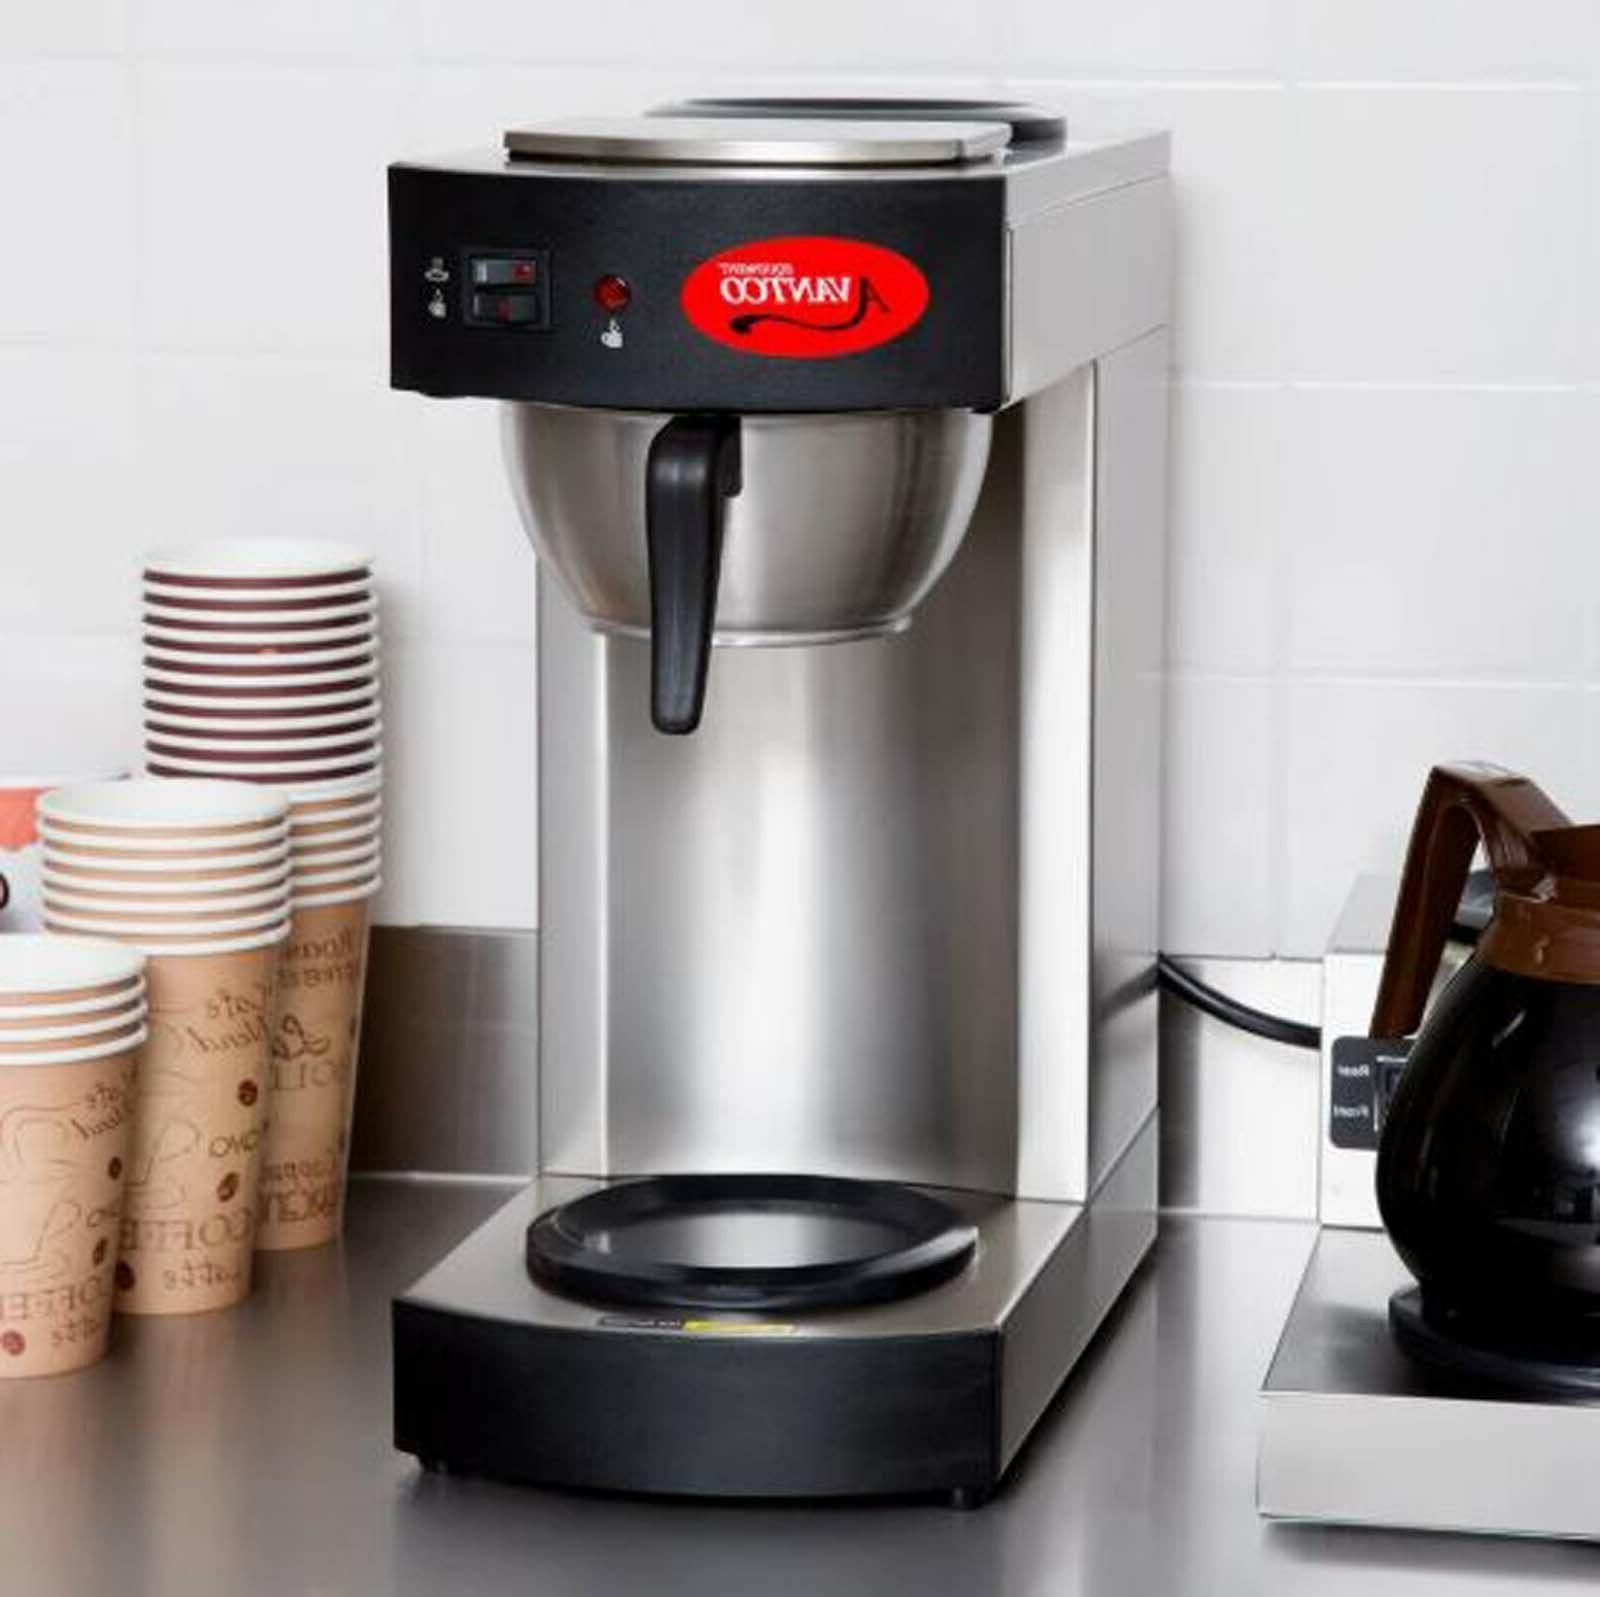 New Maker Machine 2 12 Cup Warmer Pourover